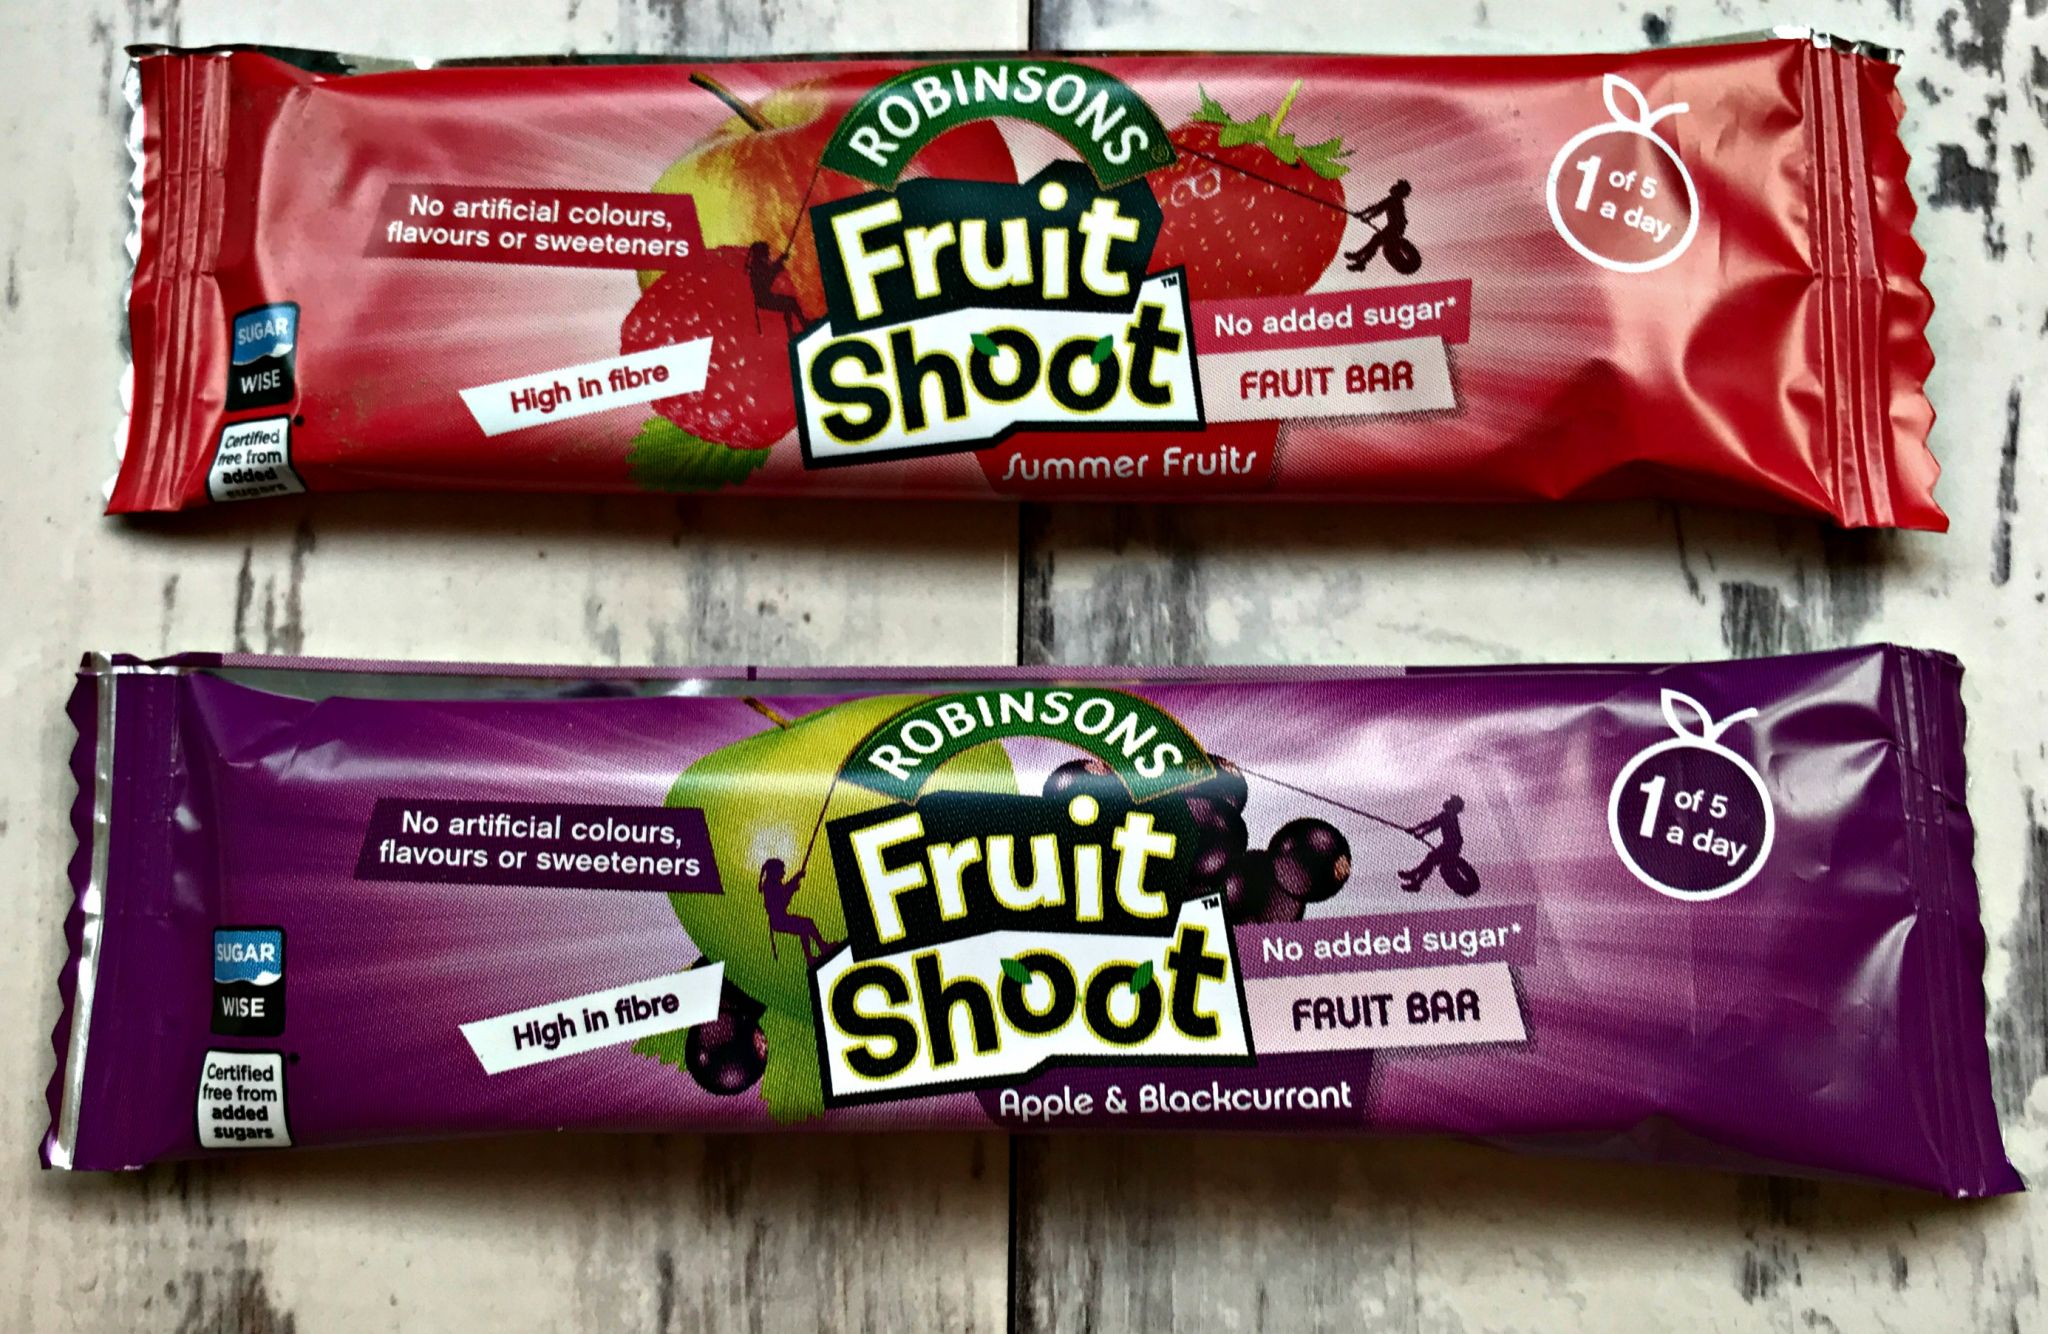 childrens snack bars - Robinsons Fruit Shoot Bars, Summer Fruits & Apple & Blackberry